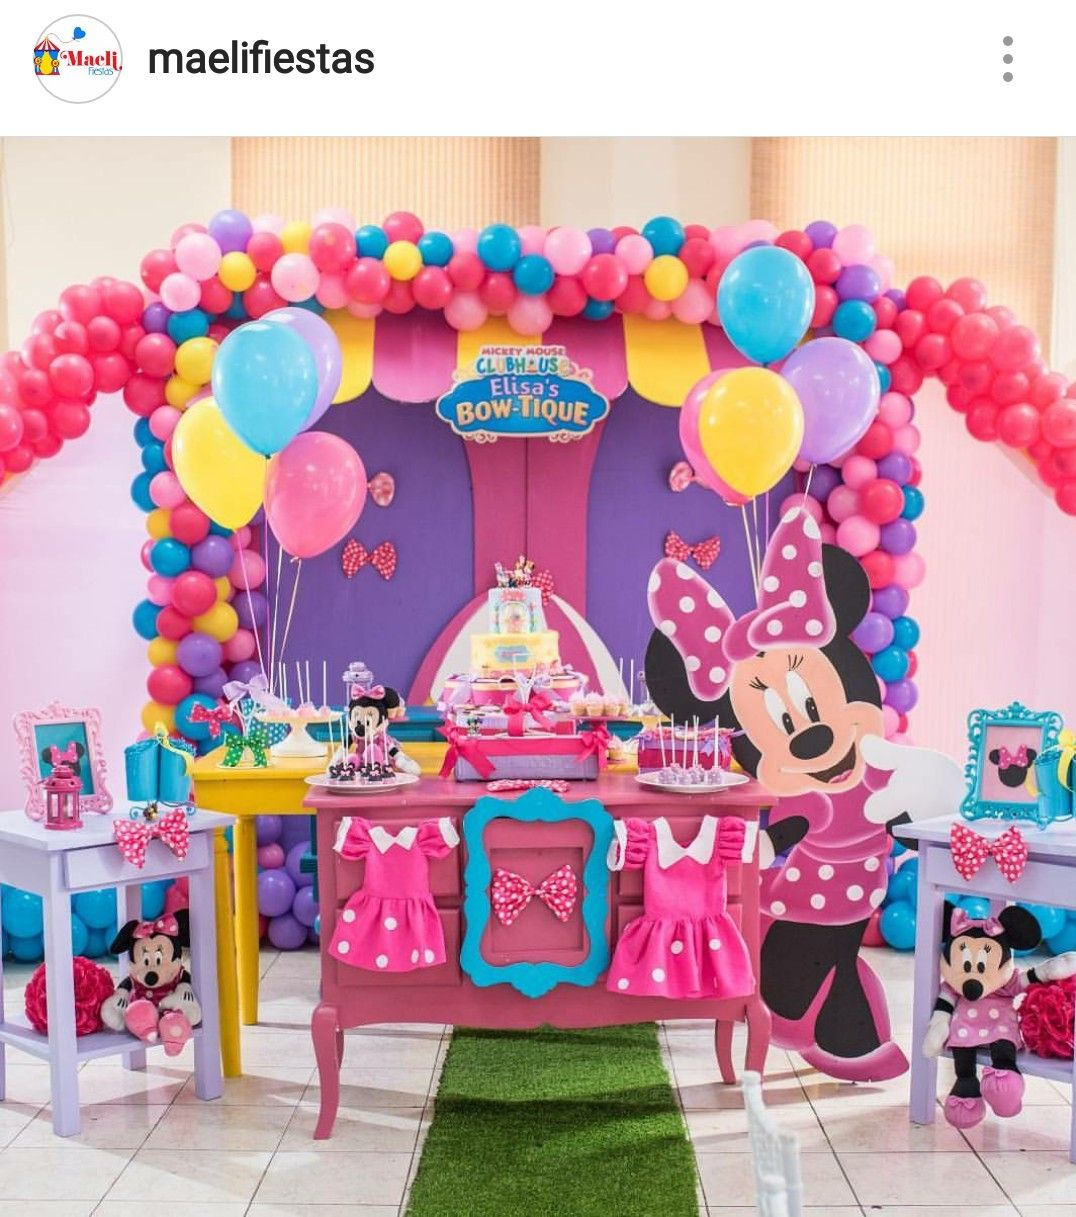 minnie 39 s boutique birthday party dessert table and decor. Black Bedroom Furniture Sets. Home Design Ideas